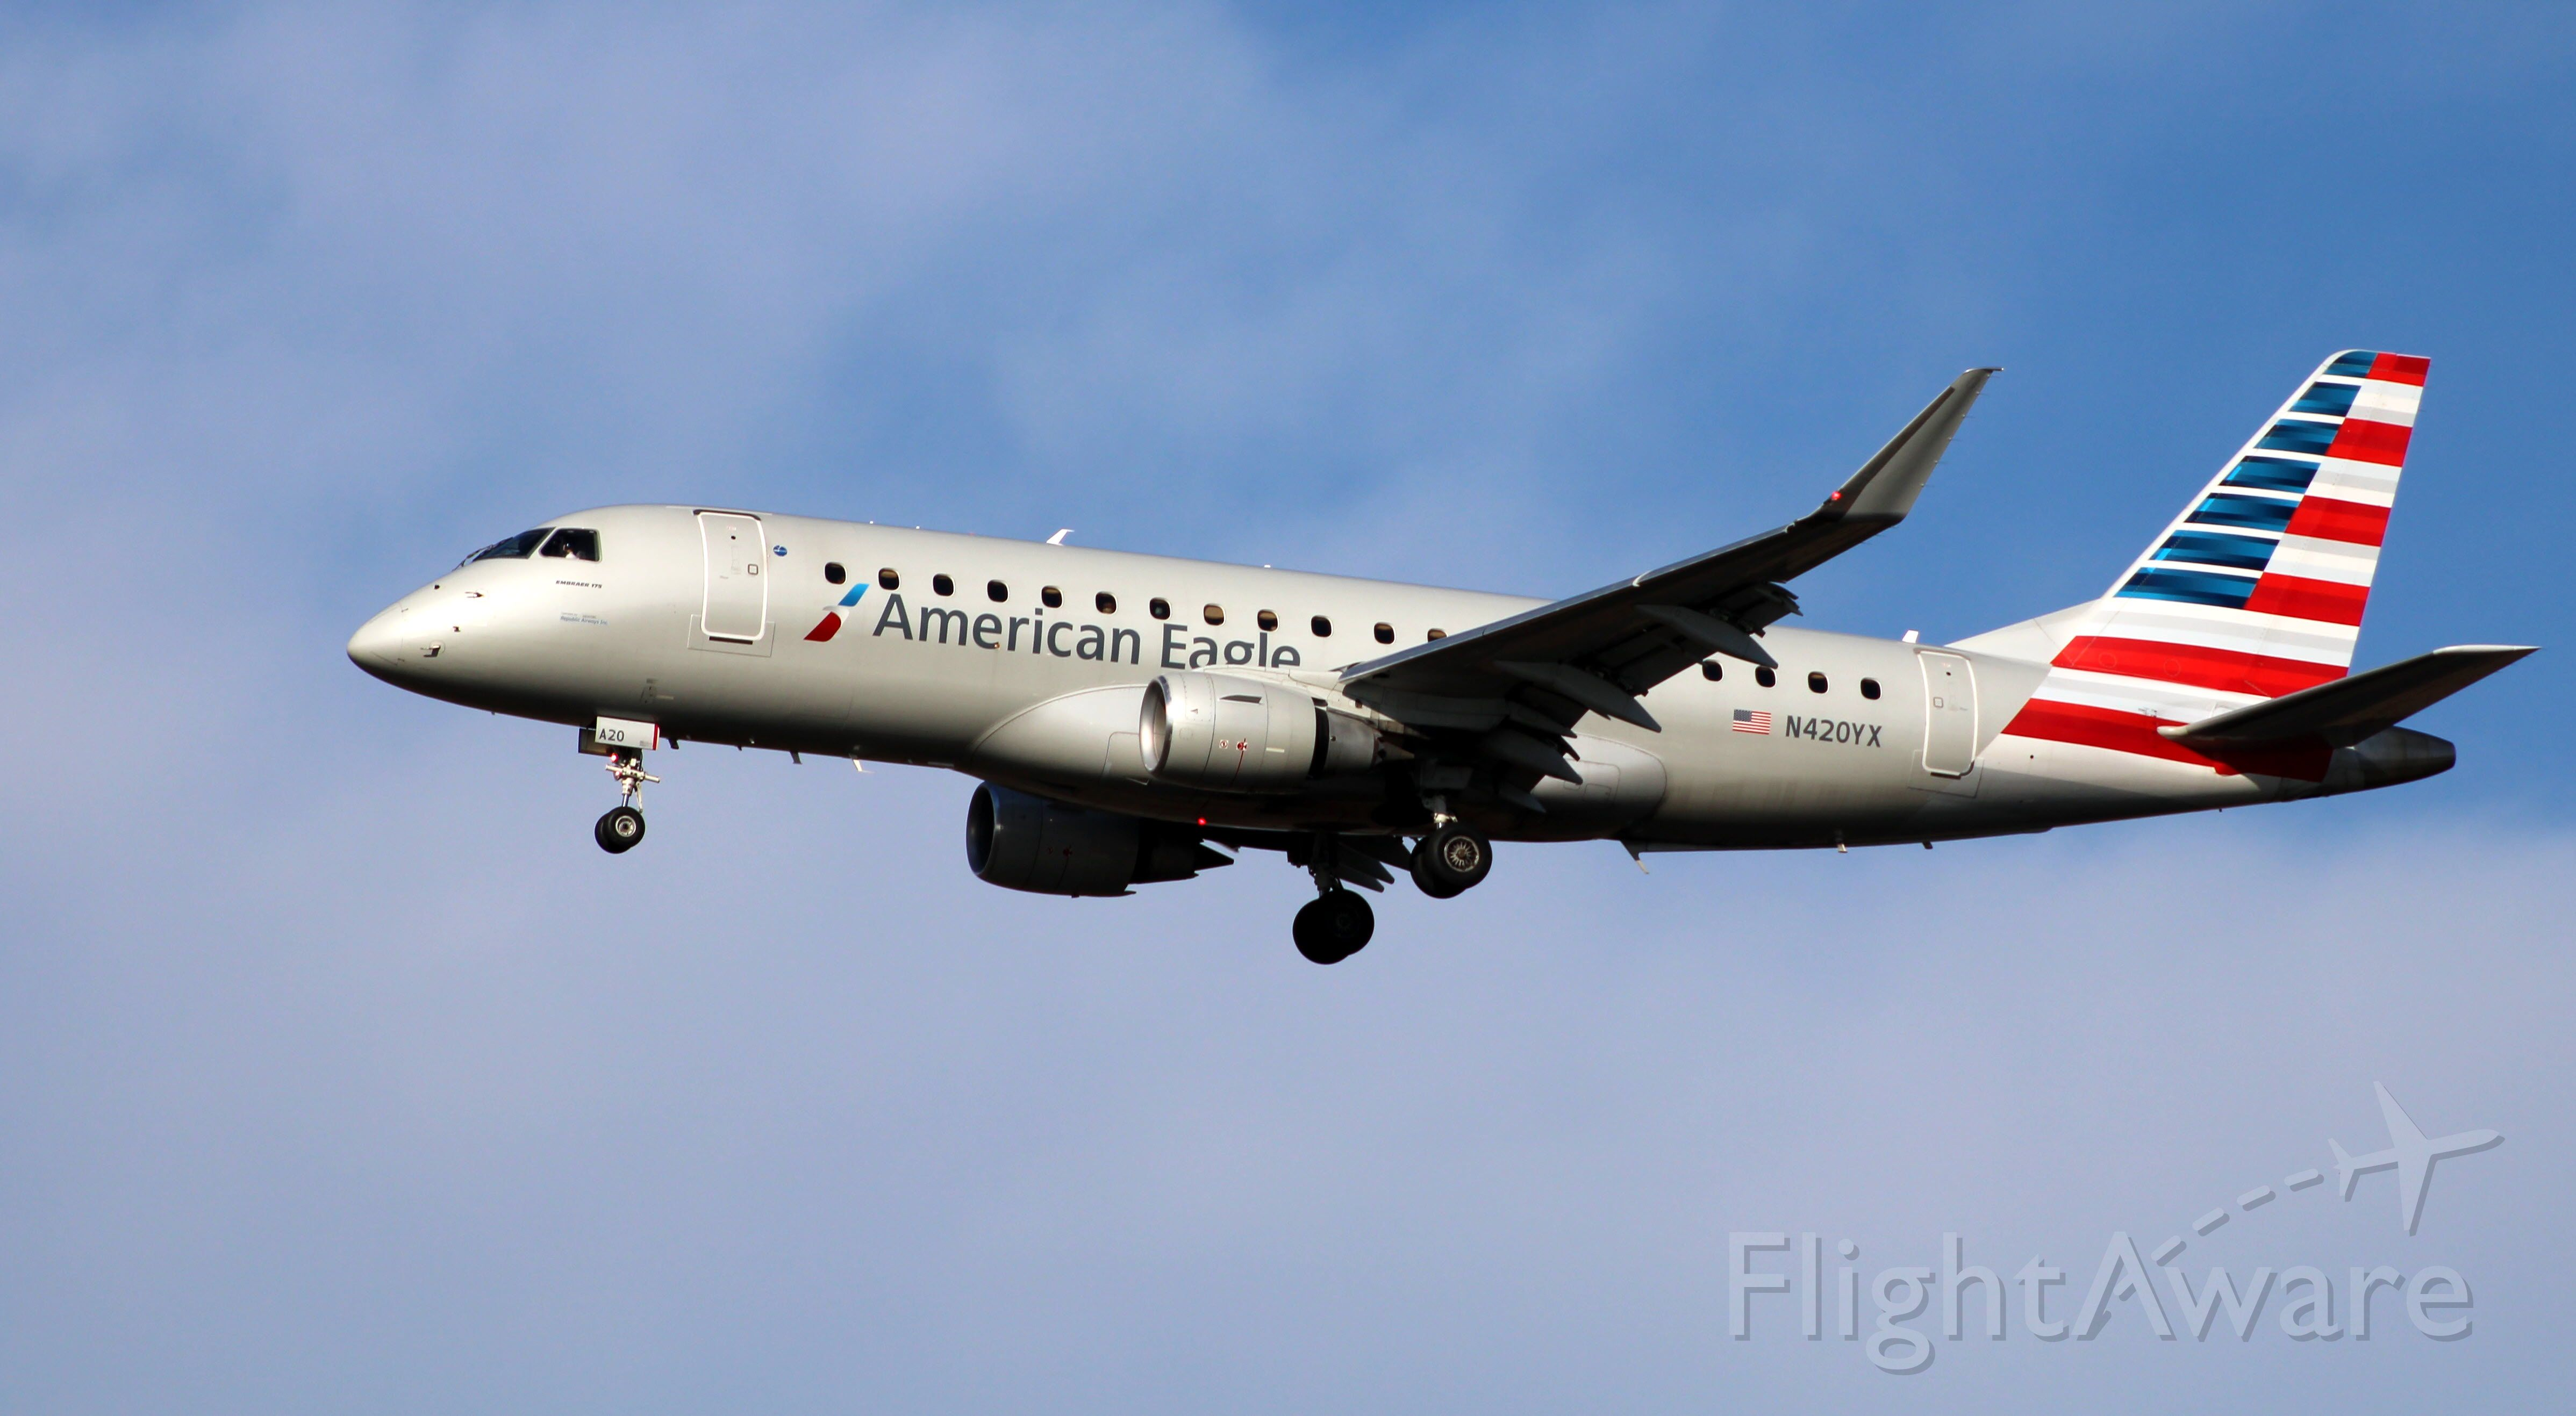 Embraer 175 (N420YX) - On final is this 2014 American Airlines Eagle Embraer ERJ 170-200LR from the Autumn of 2020.